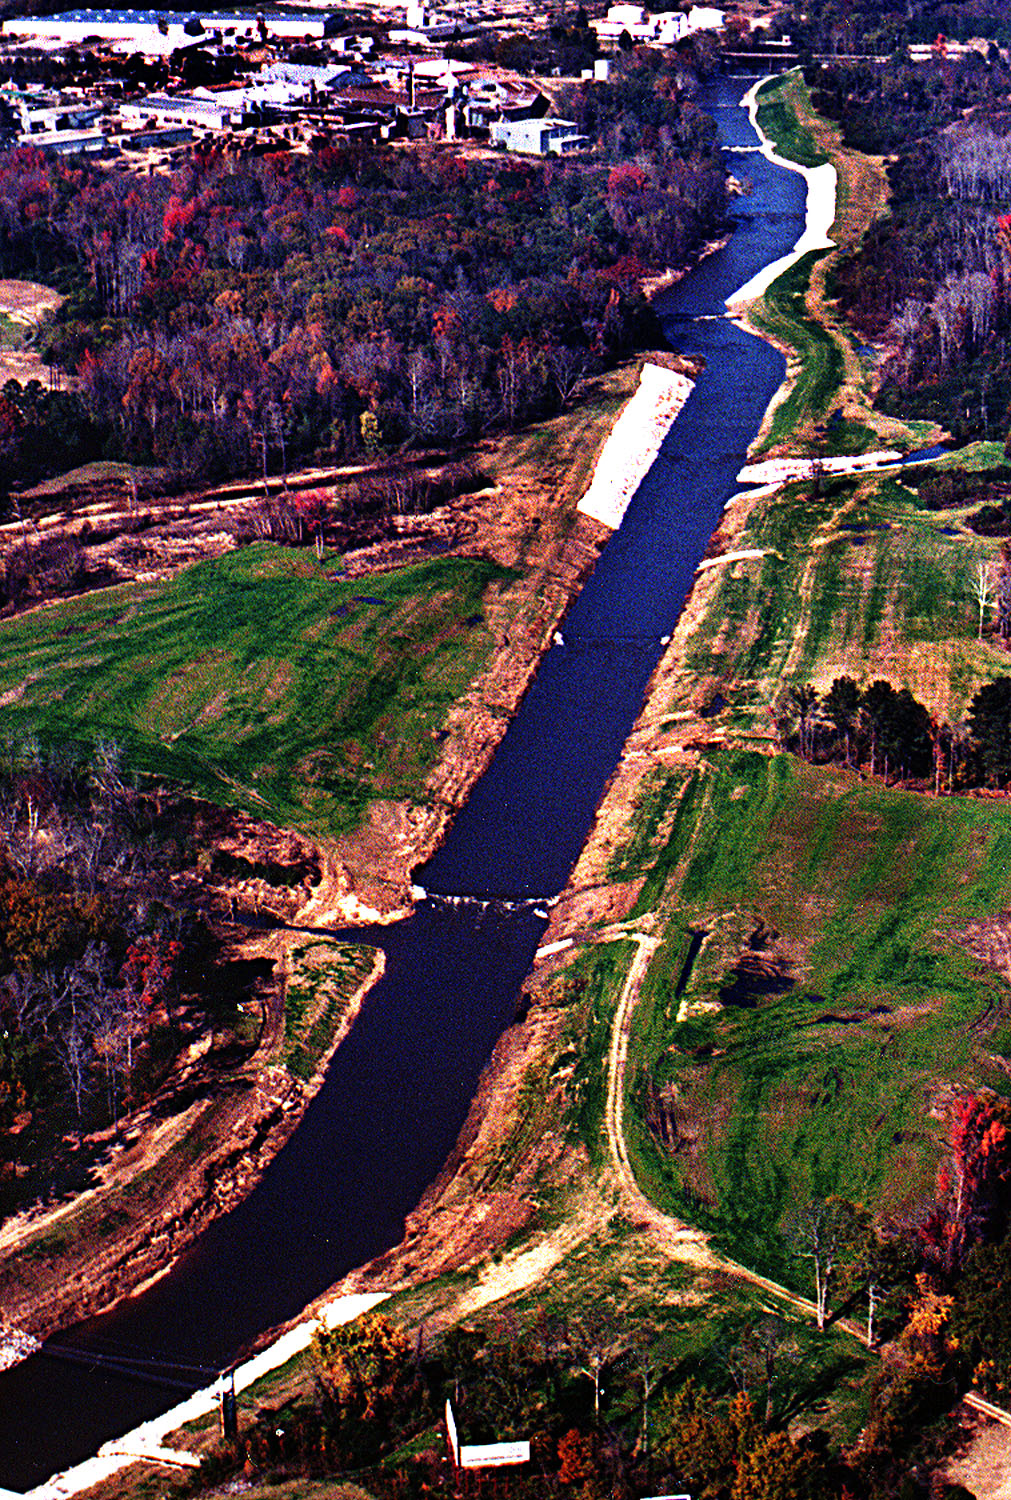 Cities In Ms >> Luxapallila Creek - Wikipedia